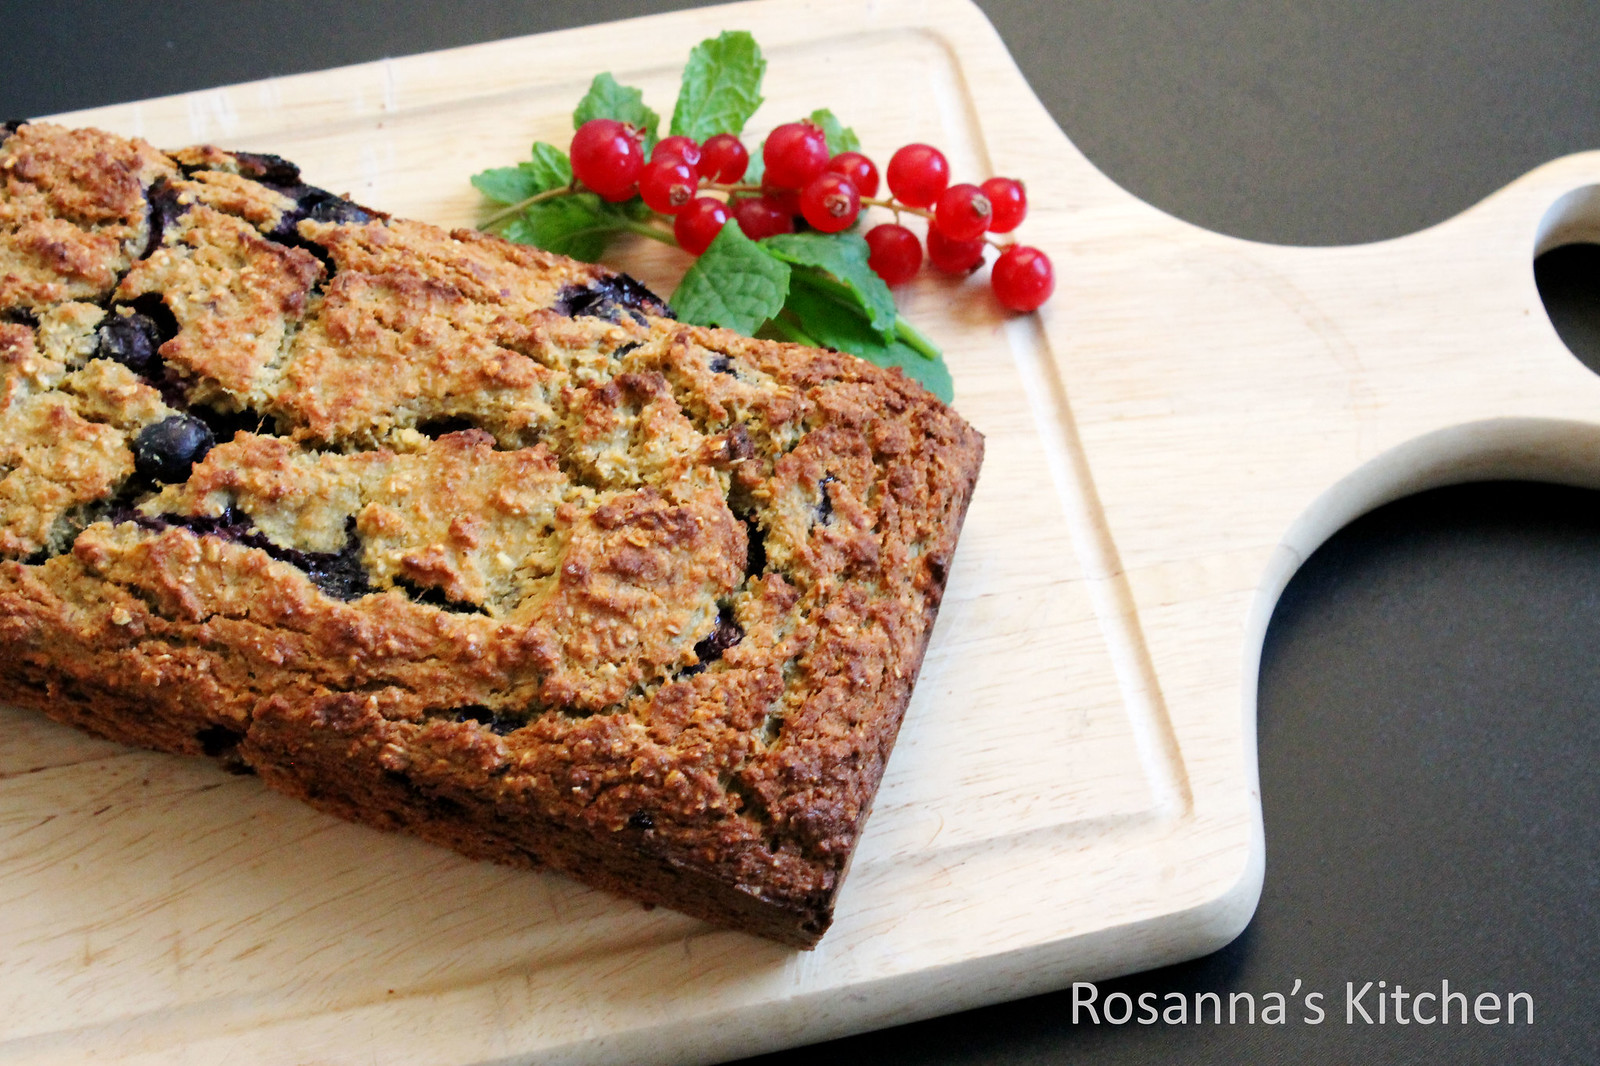 blueberry and banana oat loaf